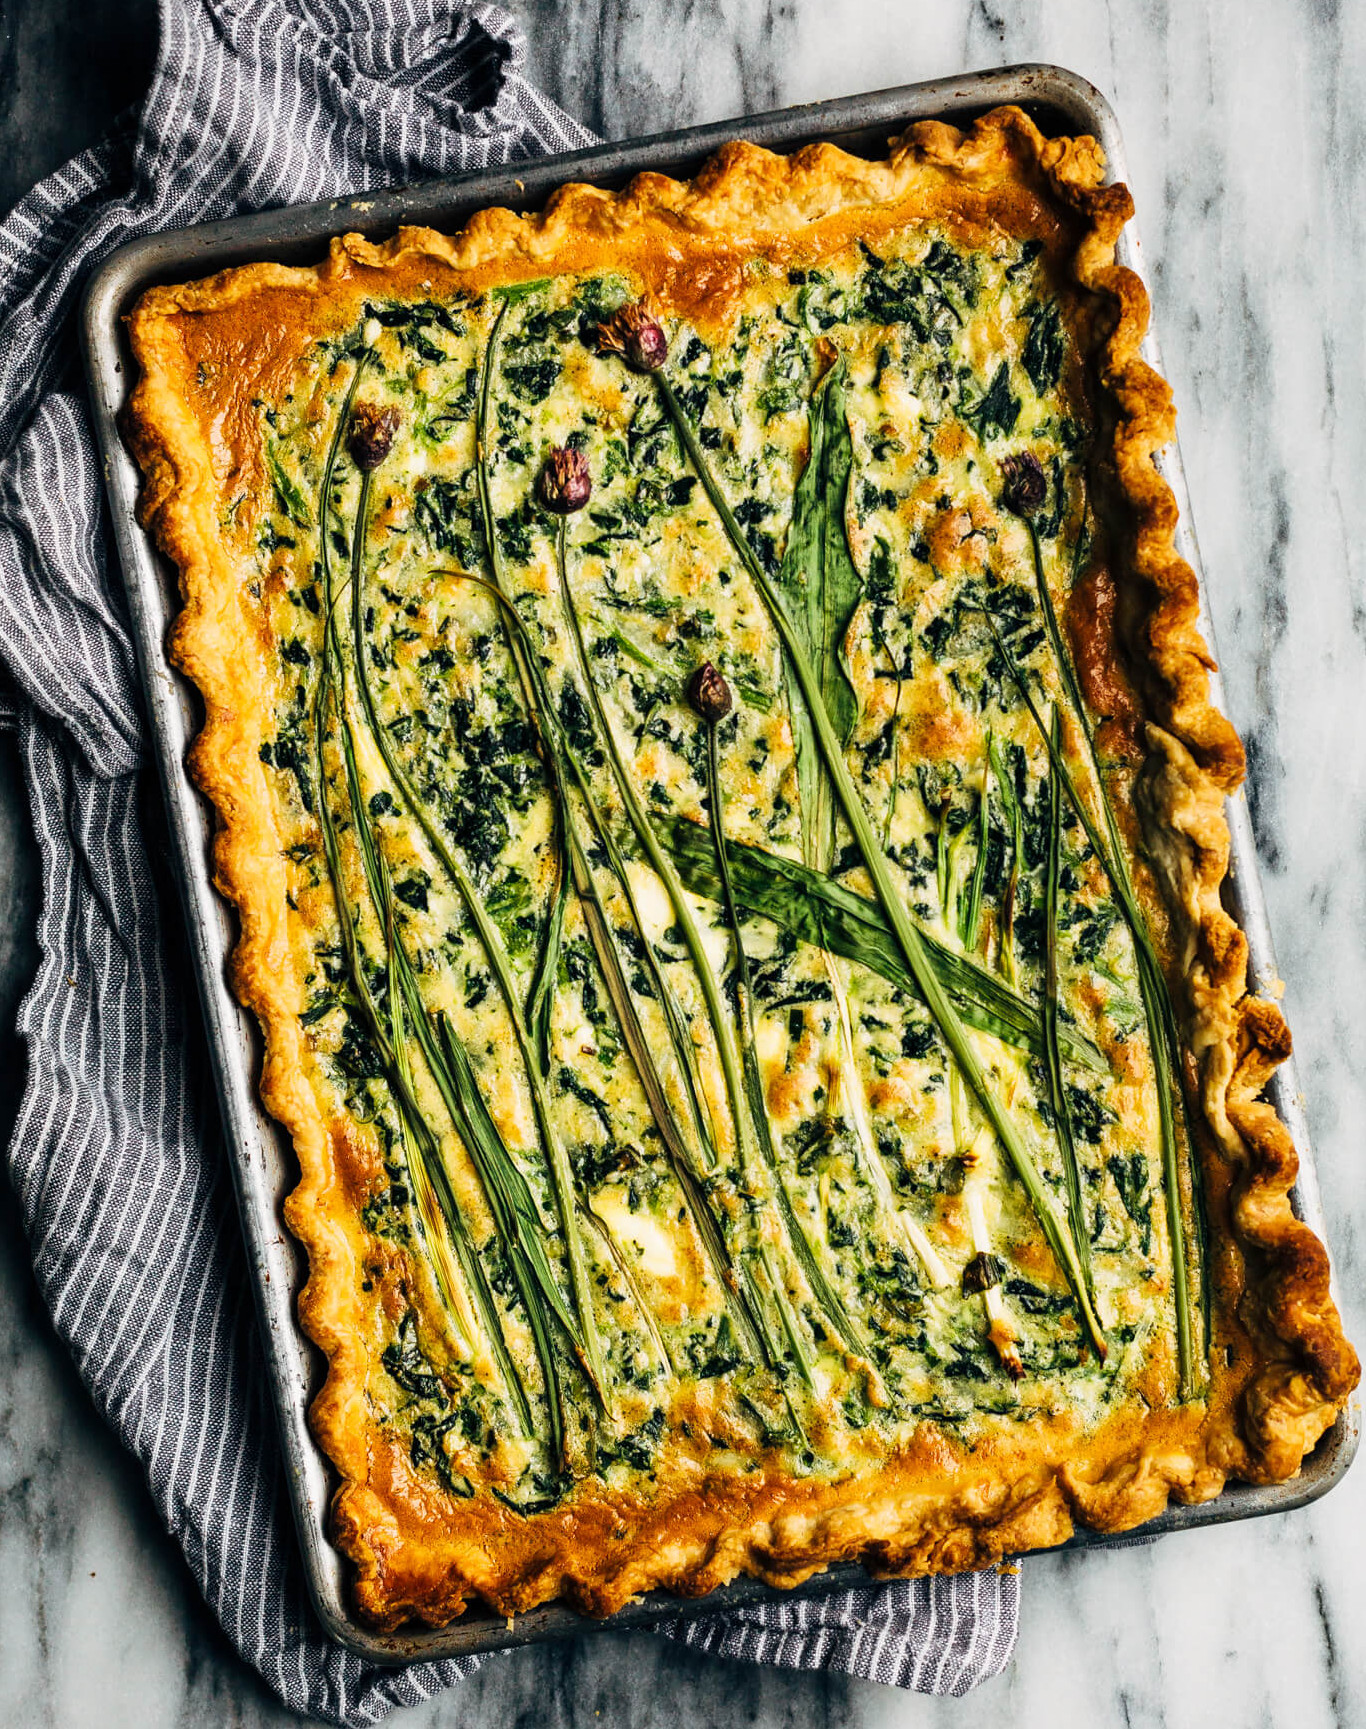 Sheet Pan Spinach Quiche